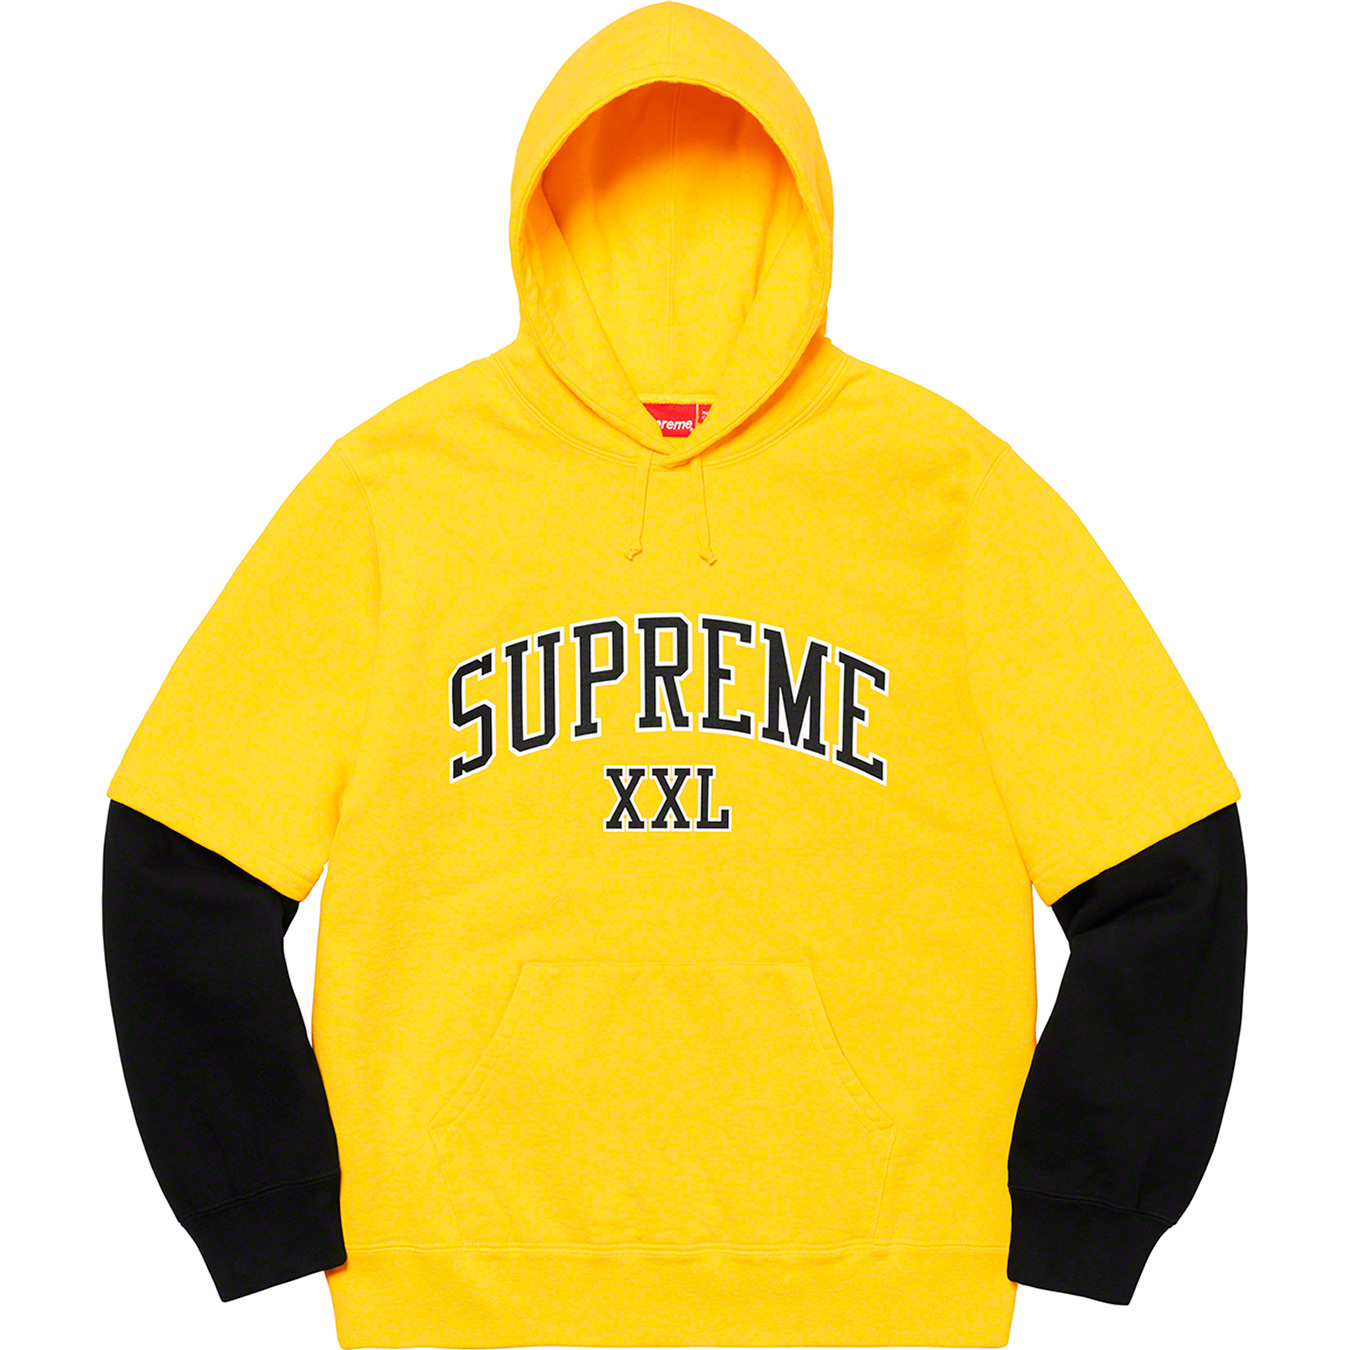 supreme-20ss-spring-summer-xxl-hooded-sweatshirt